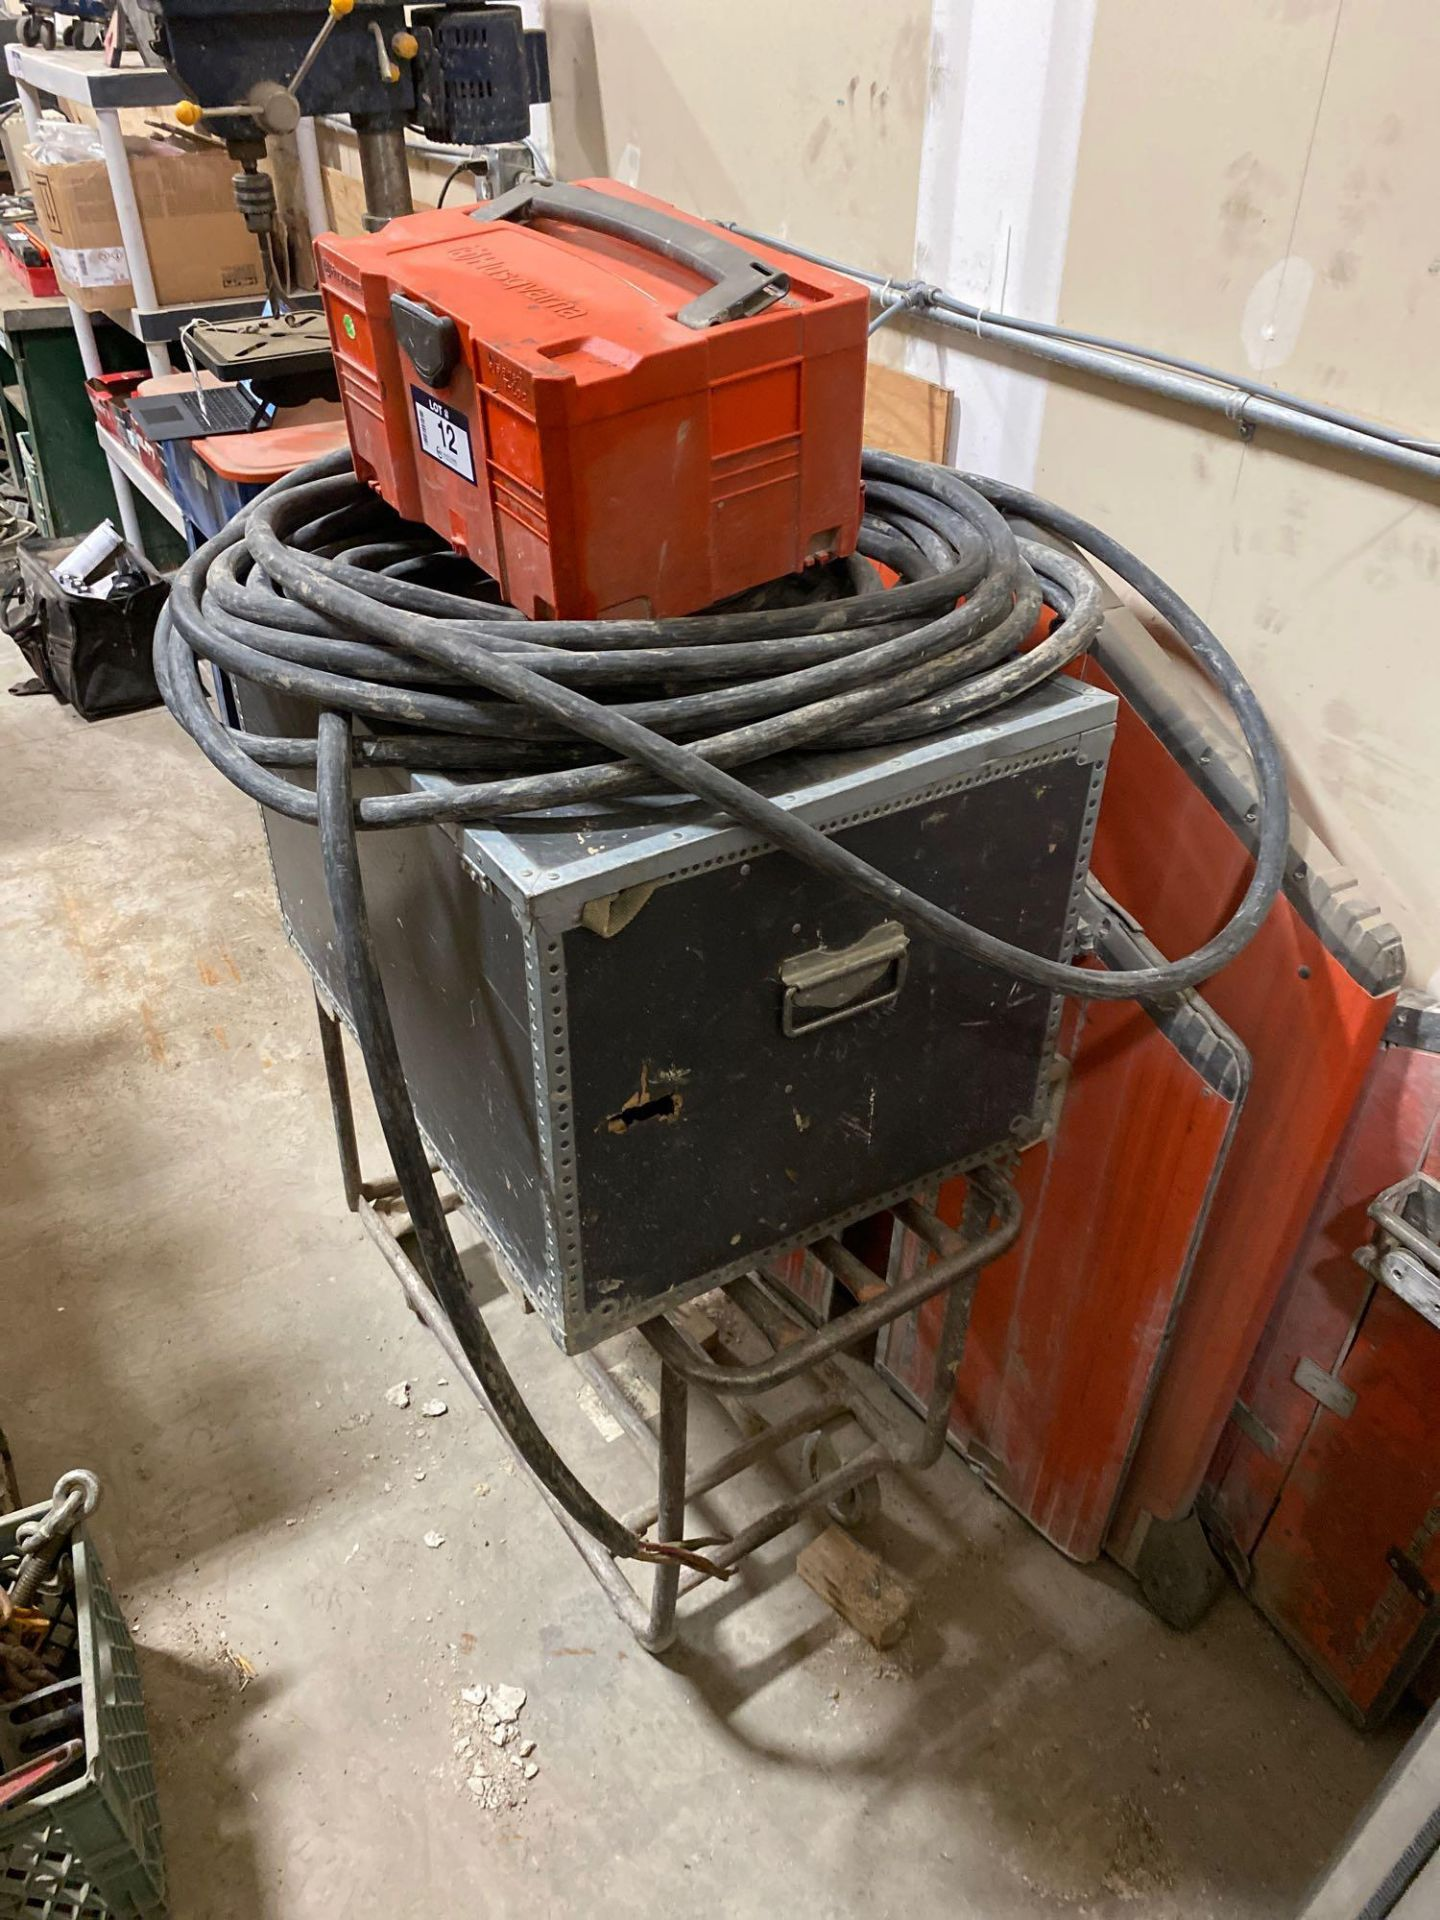 Husqvarna WS 440 HF Electric Wall Saw, Husqvarna PP 440 HF Power Pack, Track System, Blade Guards, e - Image 2 of 17